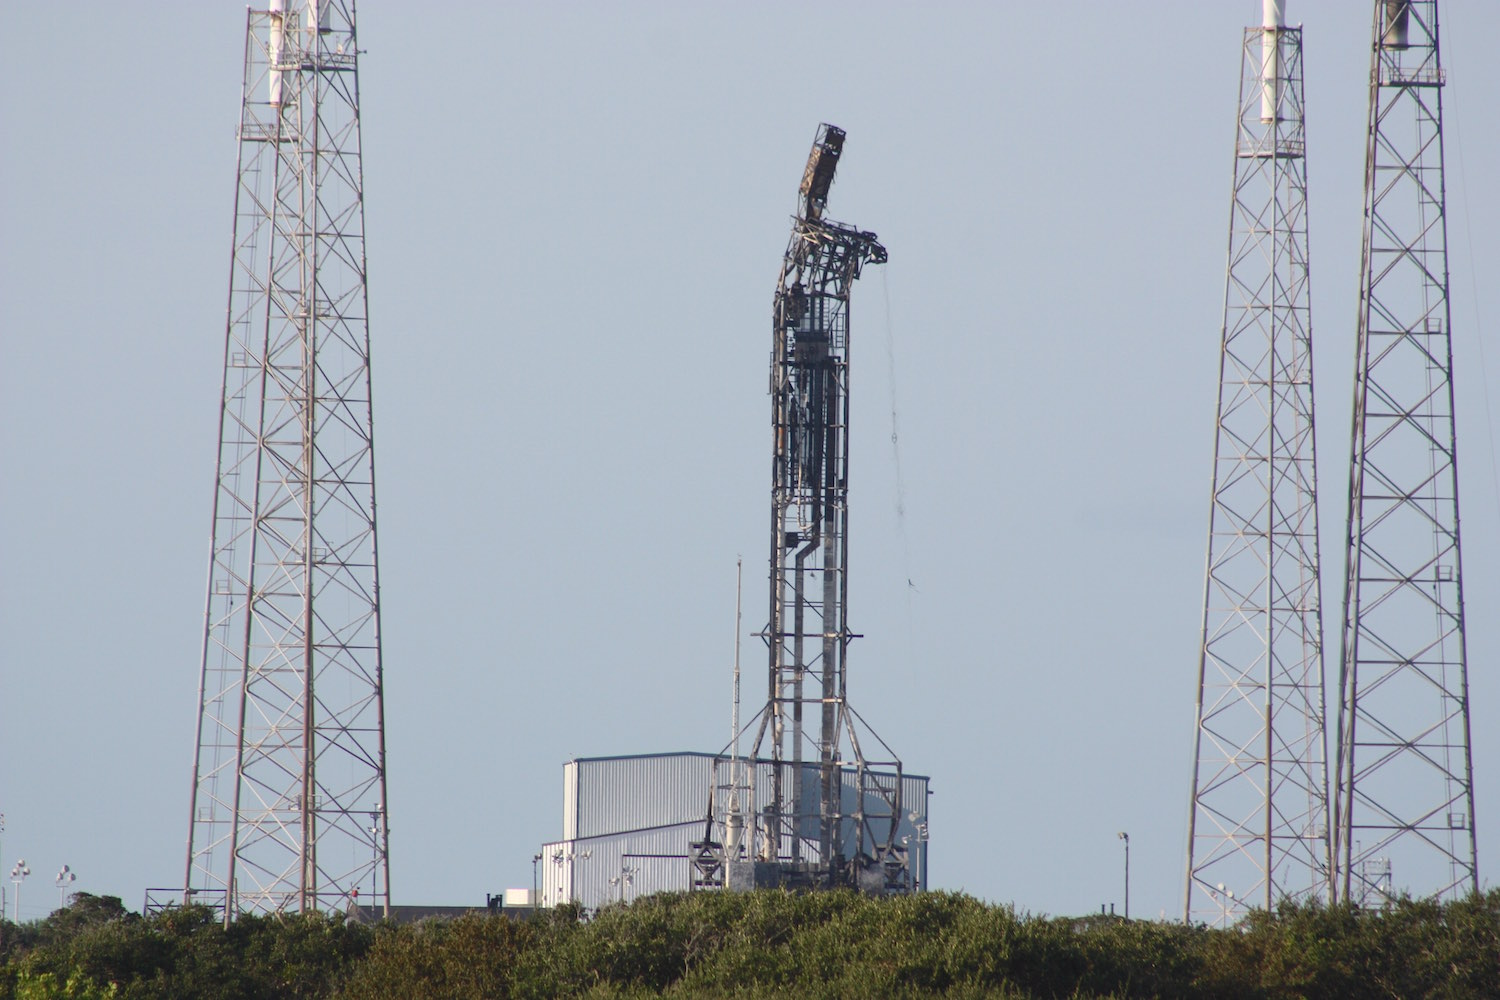 SpaceX aims to restore damaged launch pad to service by end